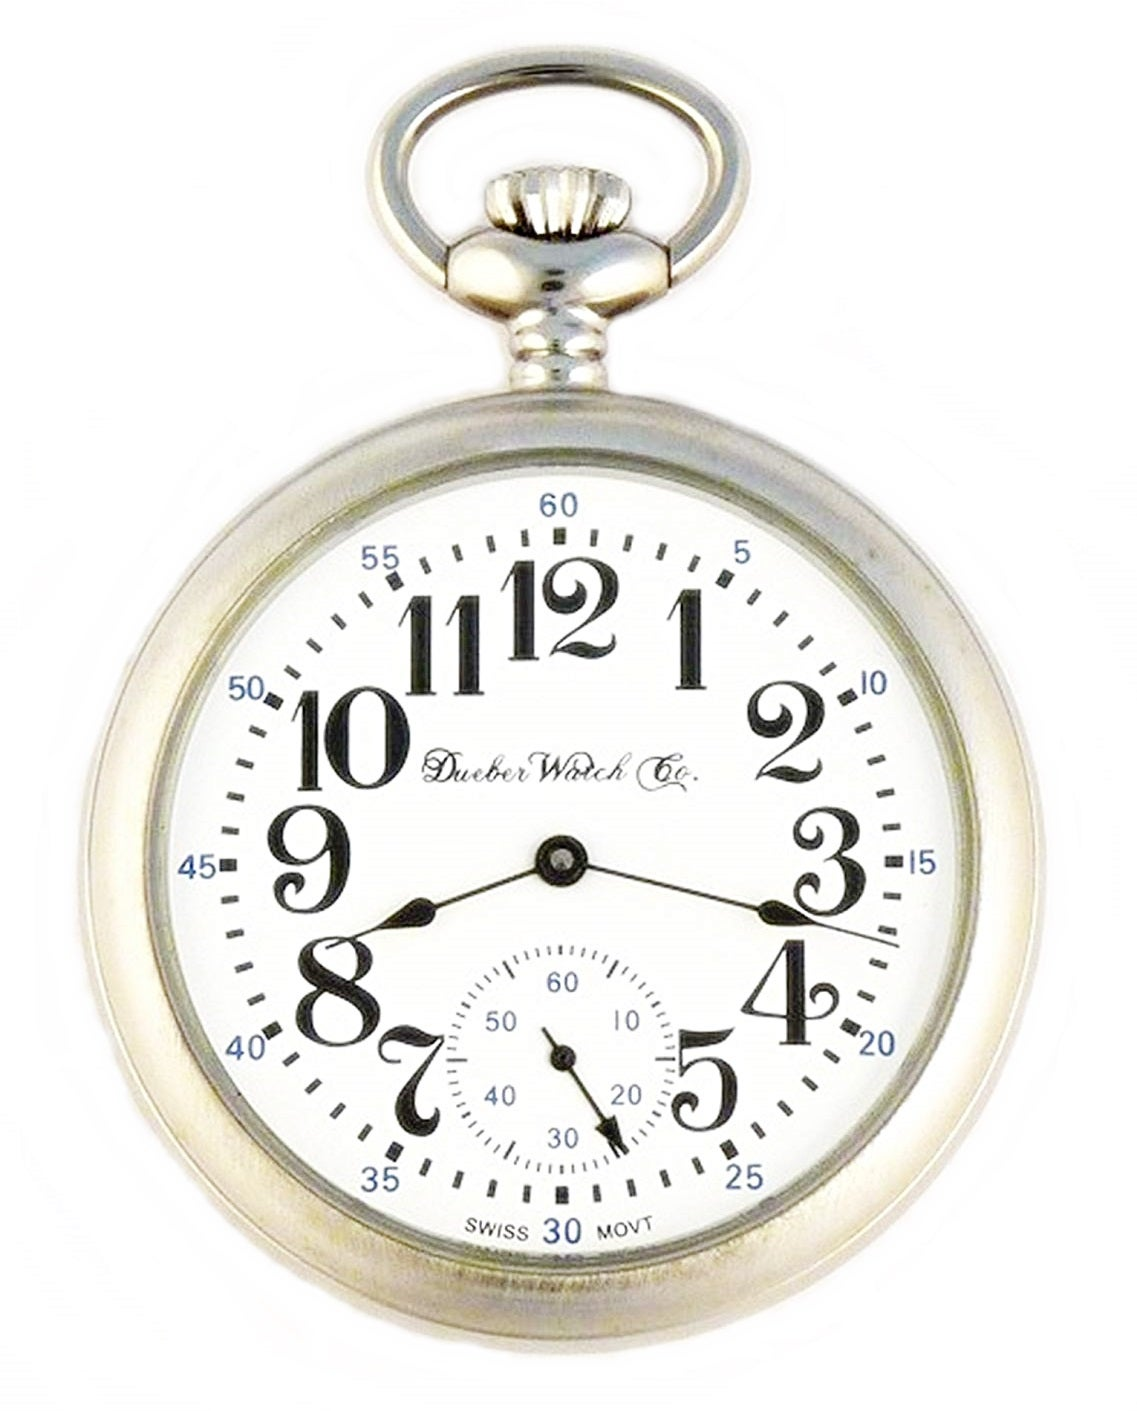 Image of Dueber Swiss Mechanical Pocket Watch, Satin Chrome Open Face Case, Arabic Numerals, Model 1